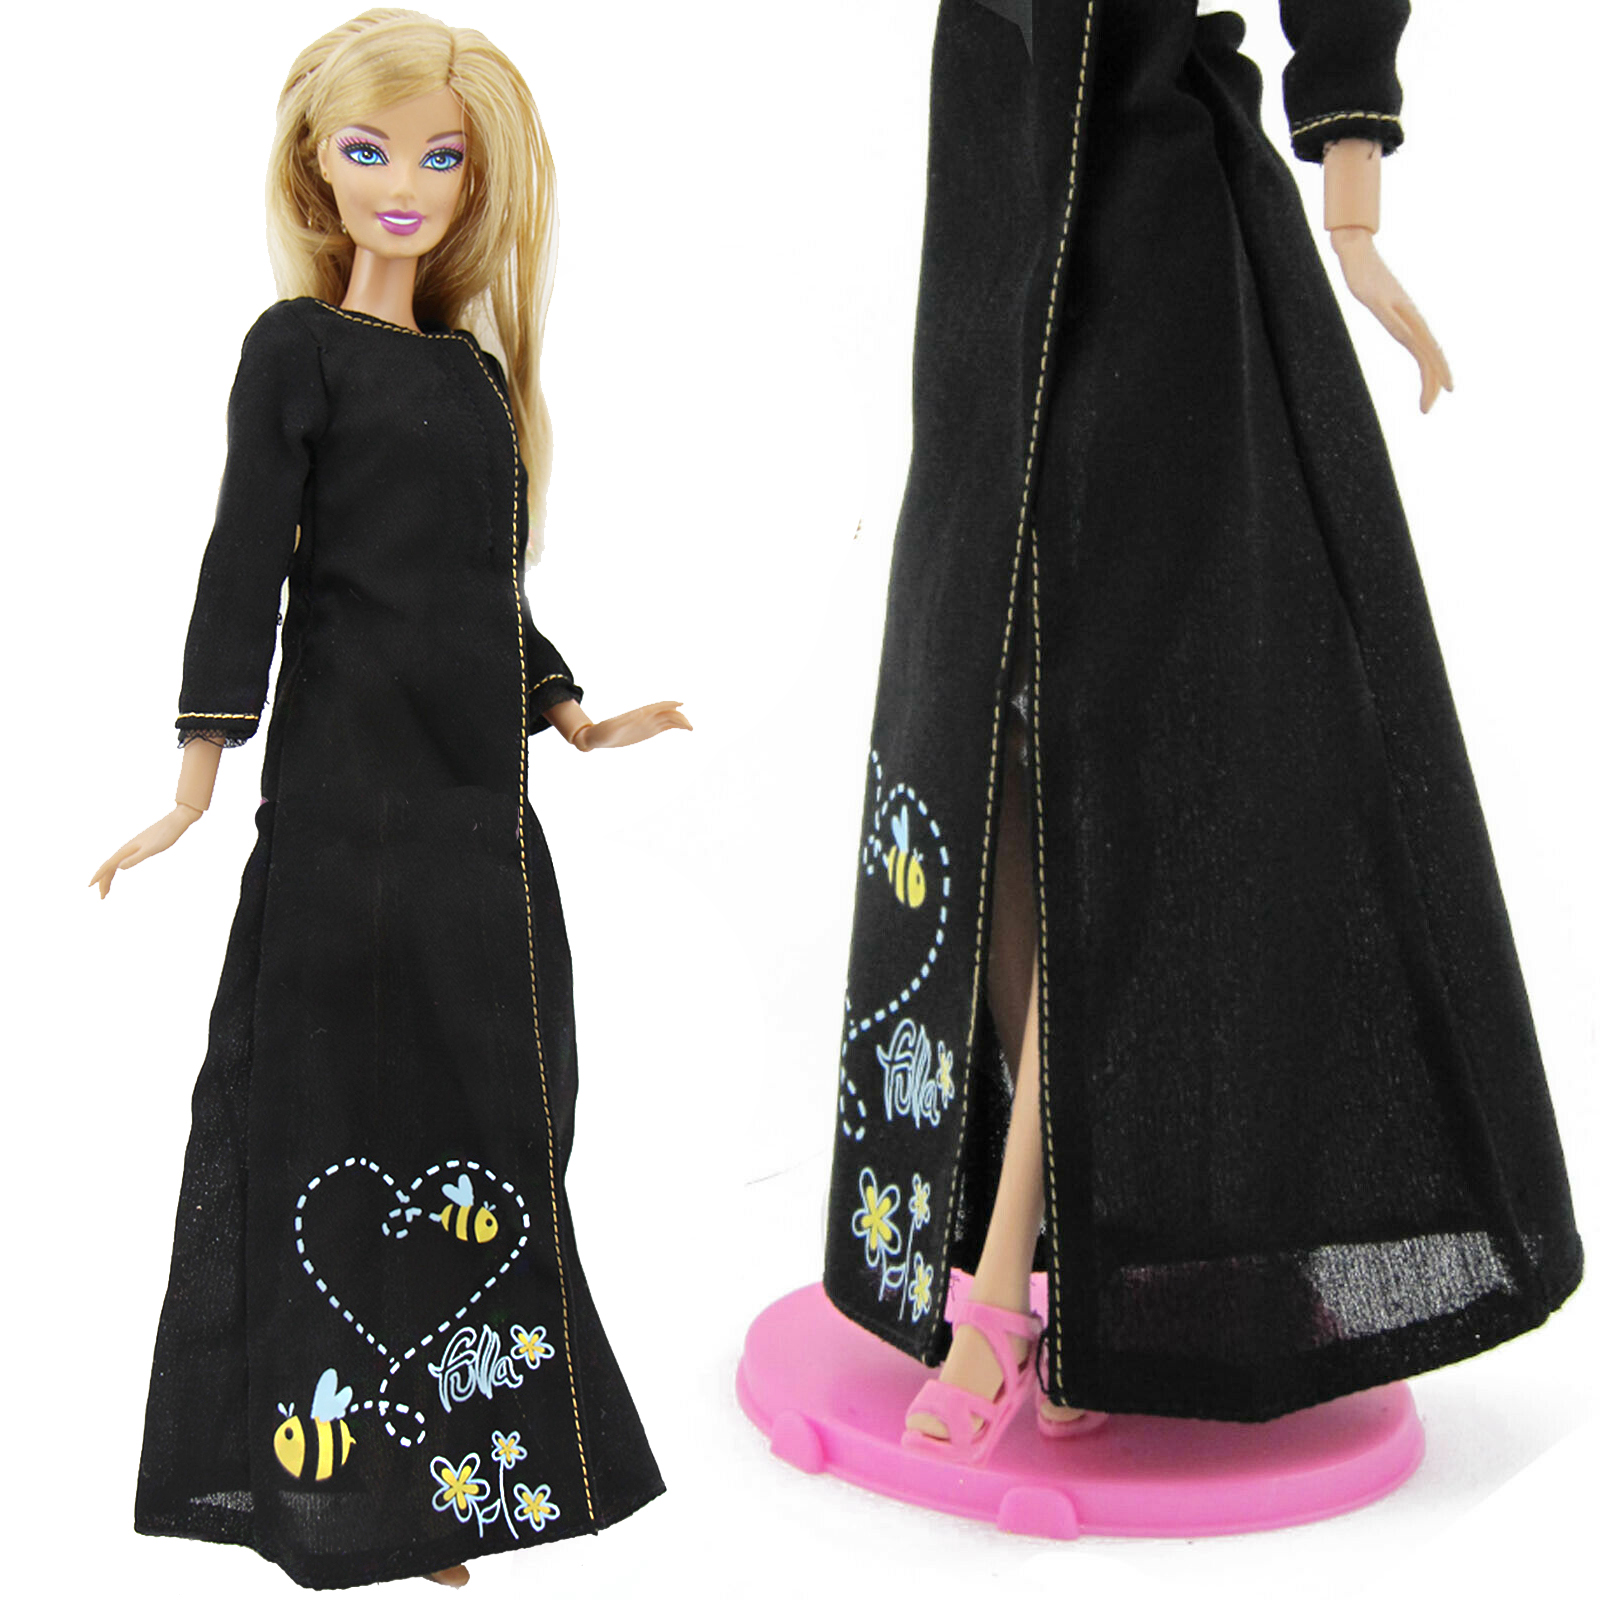 Children/'s Kids Black Mermaid Play Toy Doll 11.5 inches w// shoes /& acc.